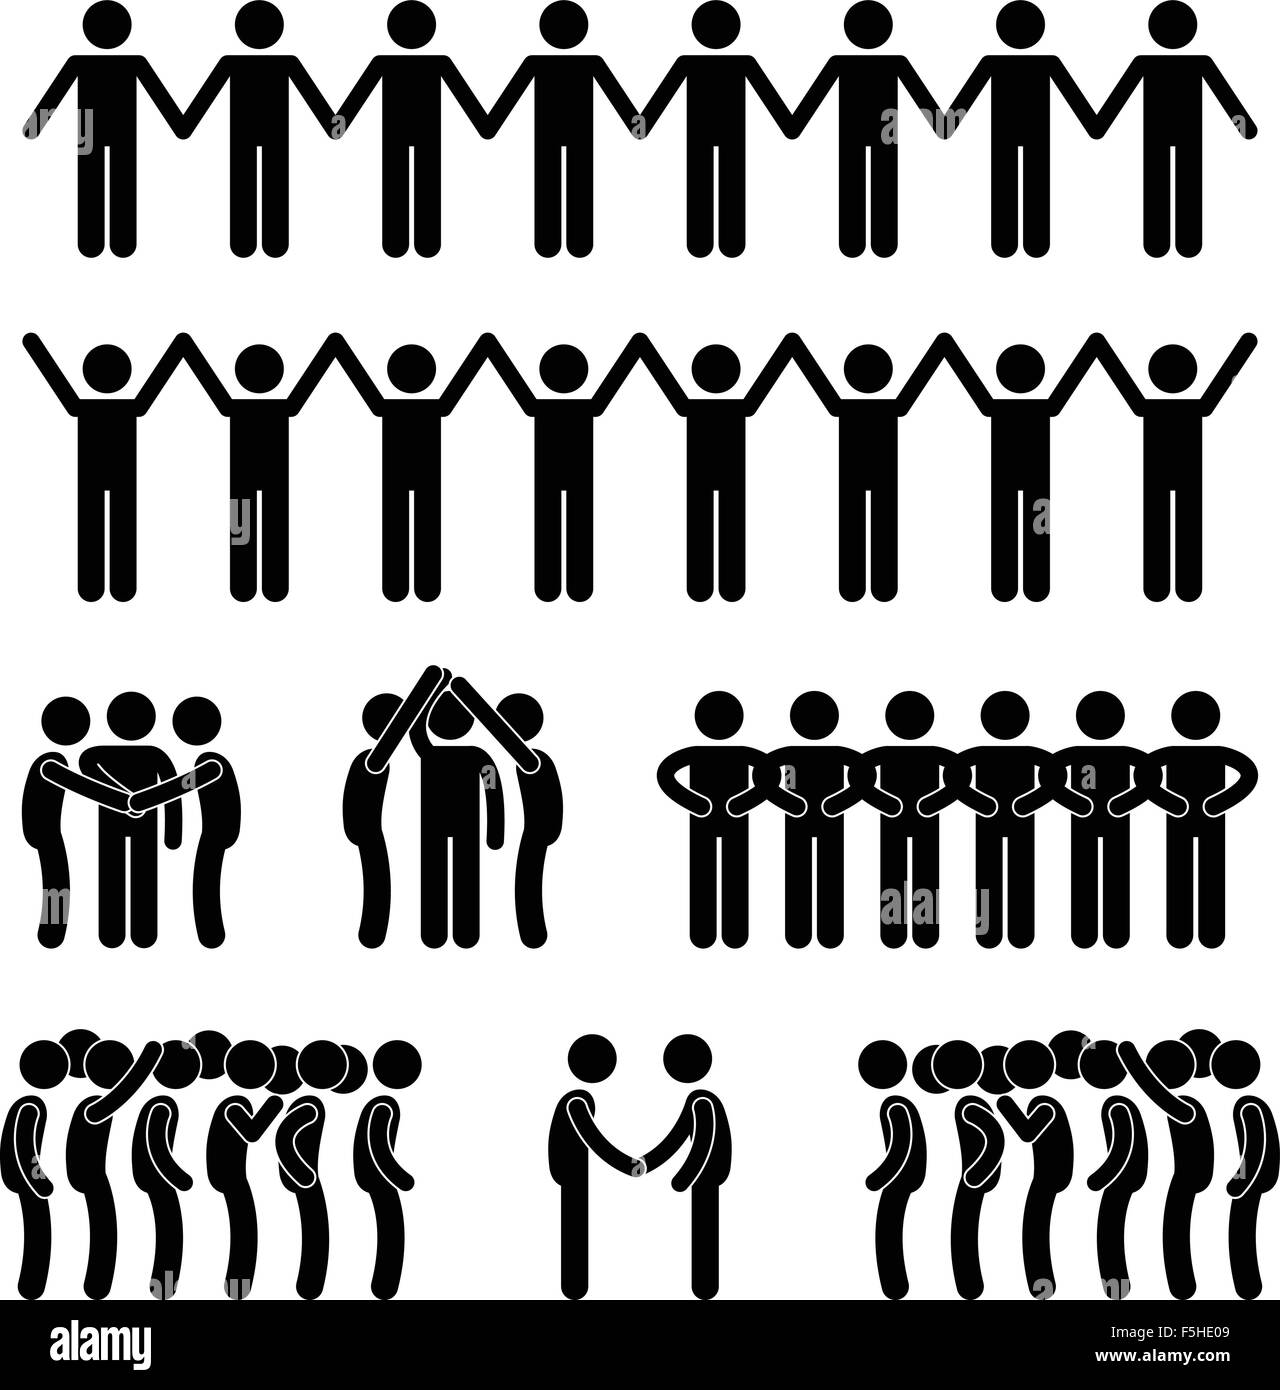 Vector Drawing Lines Unity : Man united unity community holding hand stick figure